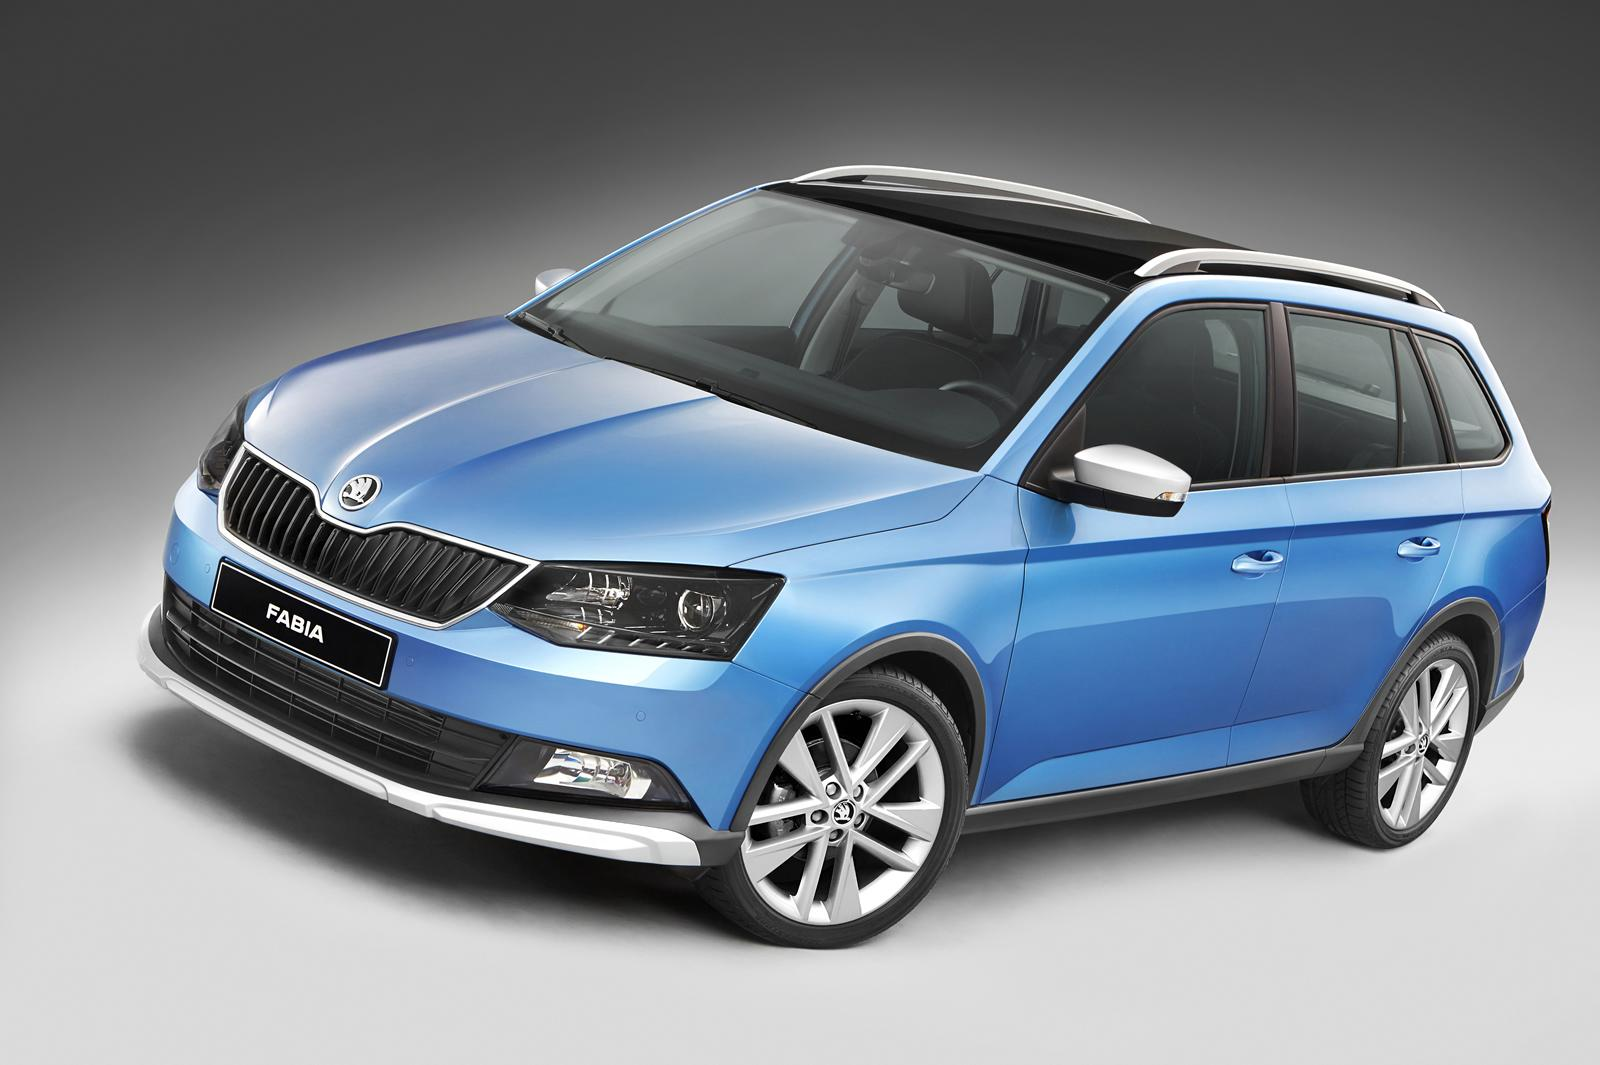 skoda fabia combi scout body kit debuts without awd or. Black Bedroom Furniture Sets. Home Design Ideas